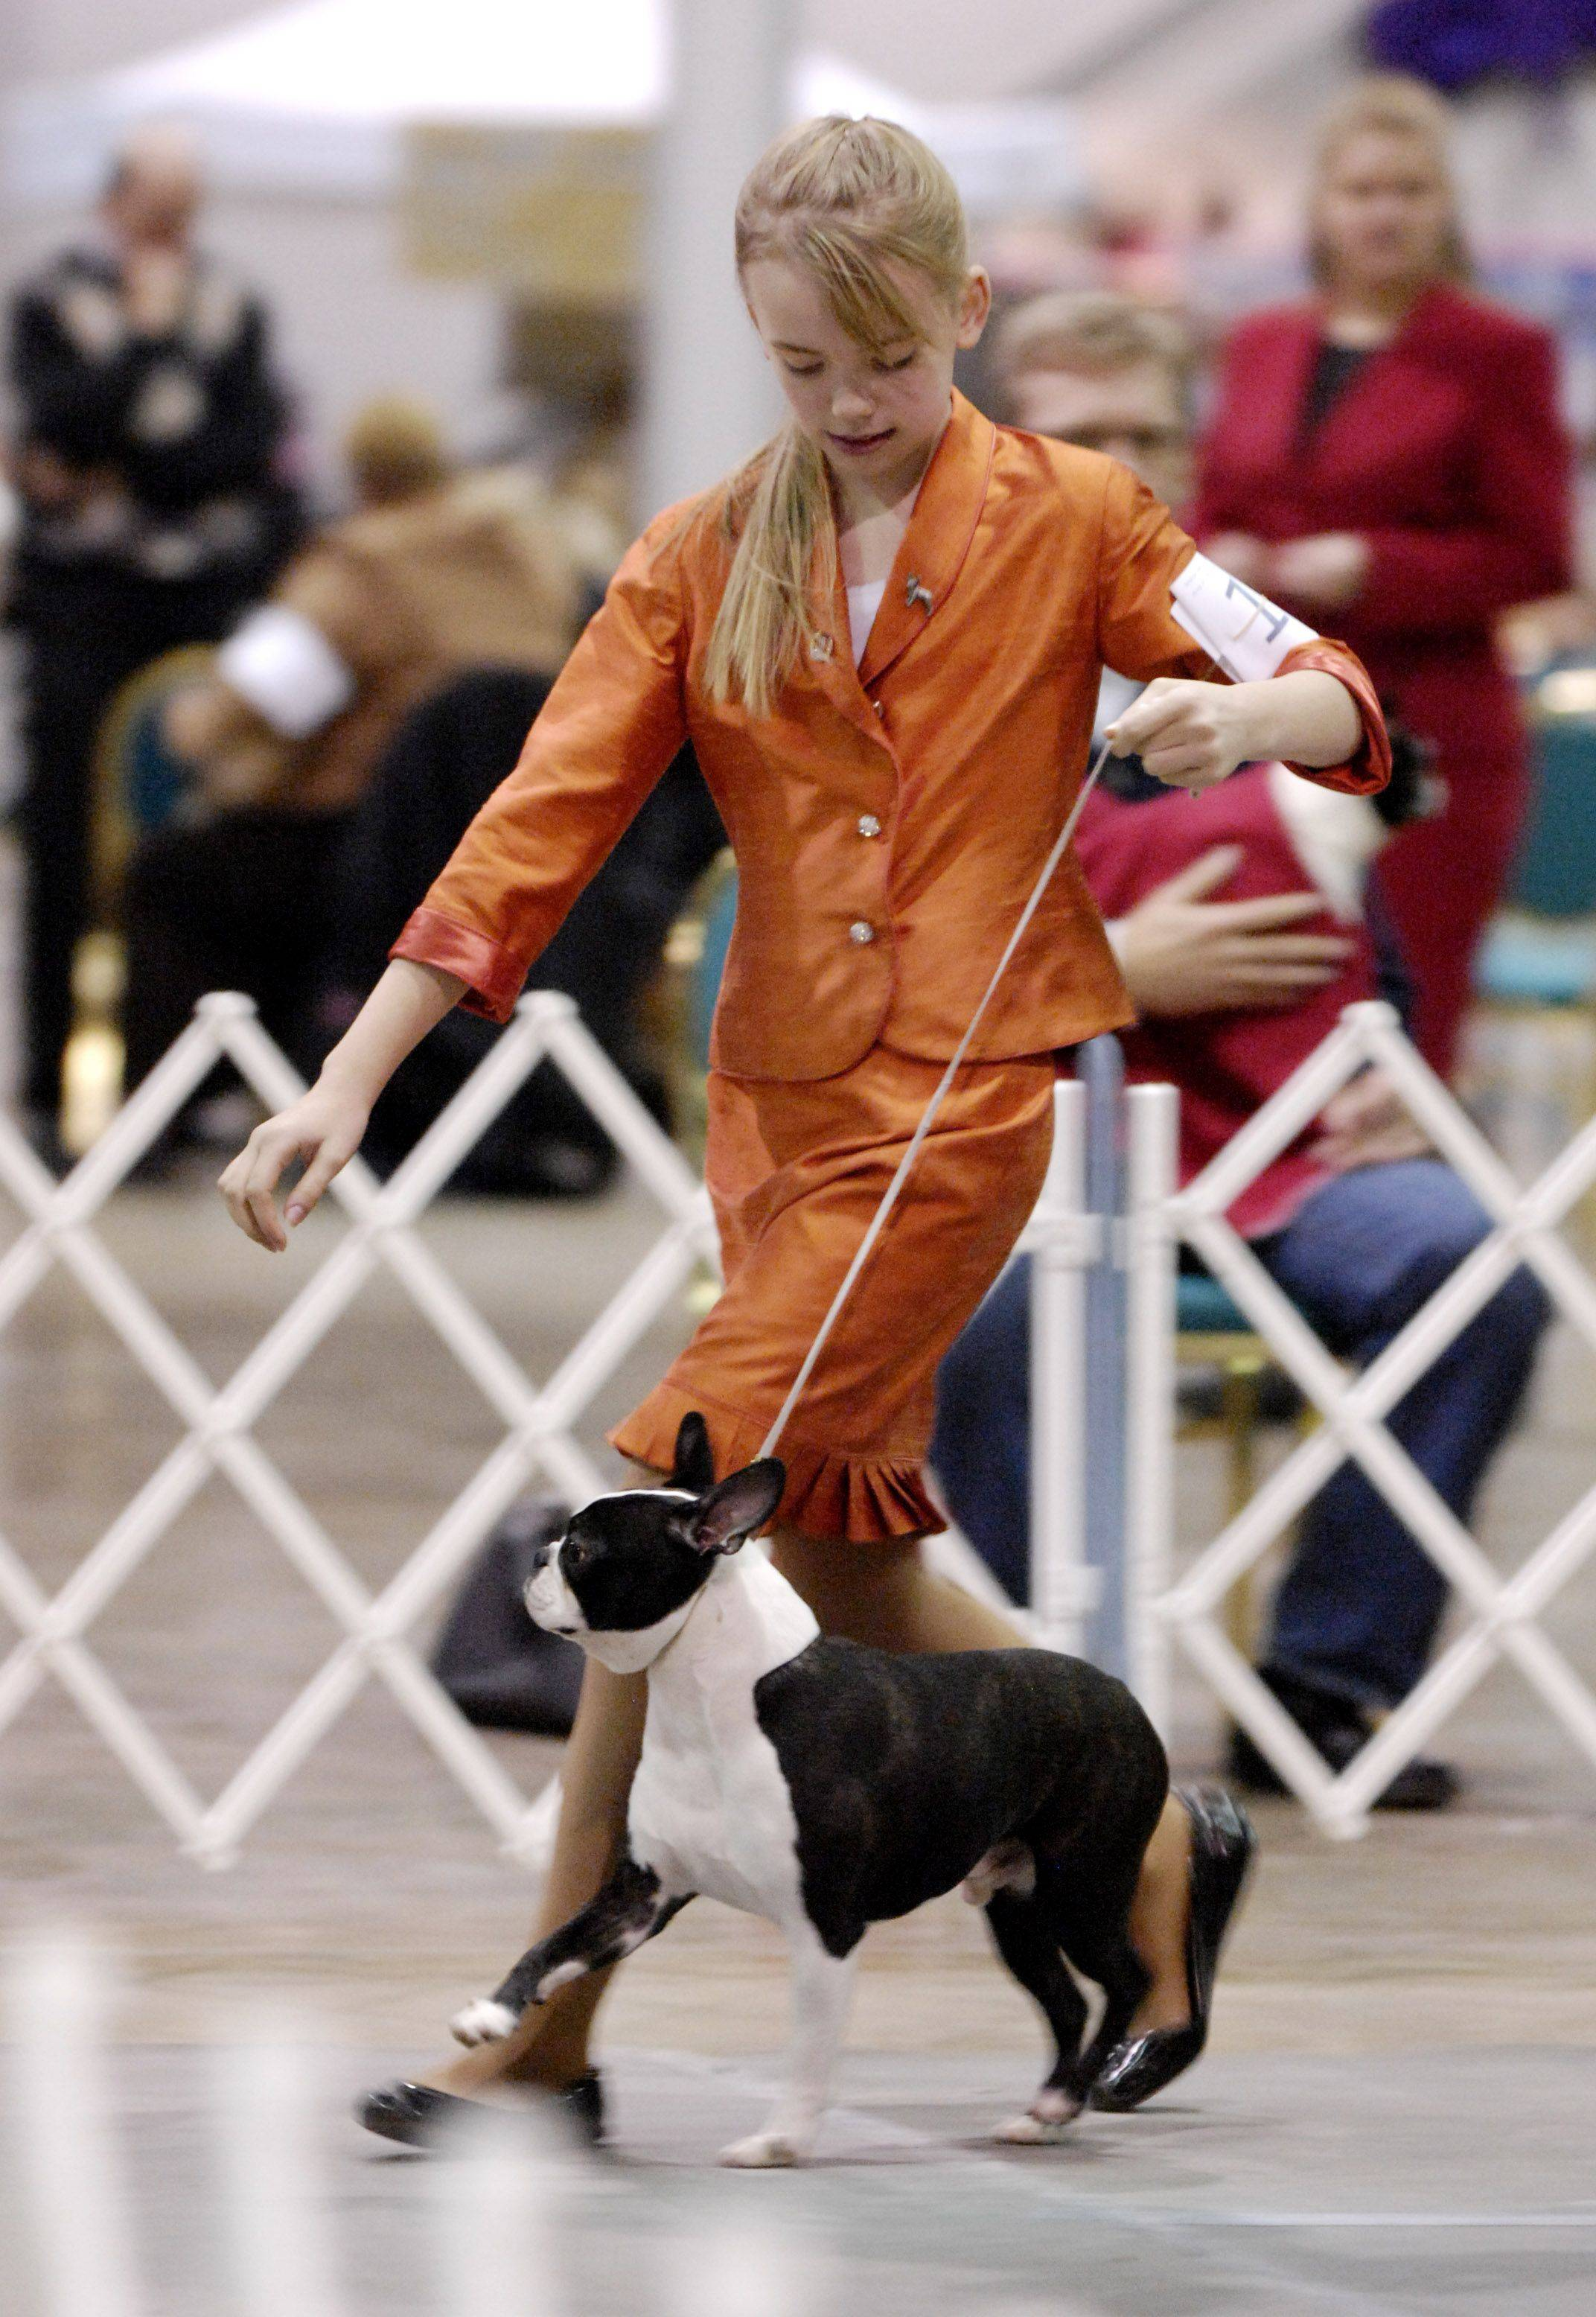 Marie Stahmer, 12 of Harvard works her Boston terrier Mojo during the Skokie Valley Kennel Club dog show at the Donald E. Stephens Convention Center in Rosemont. The twelve-year-old was competing in the adult or conformation class as well as the junior class. Stahmer and her dog received a Select Dog award at the Rosemont show.